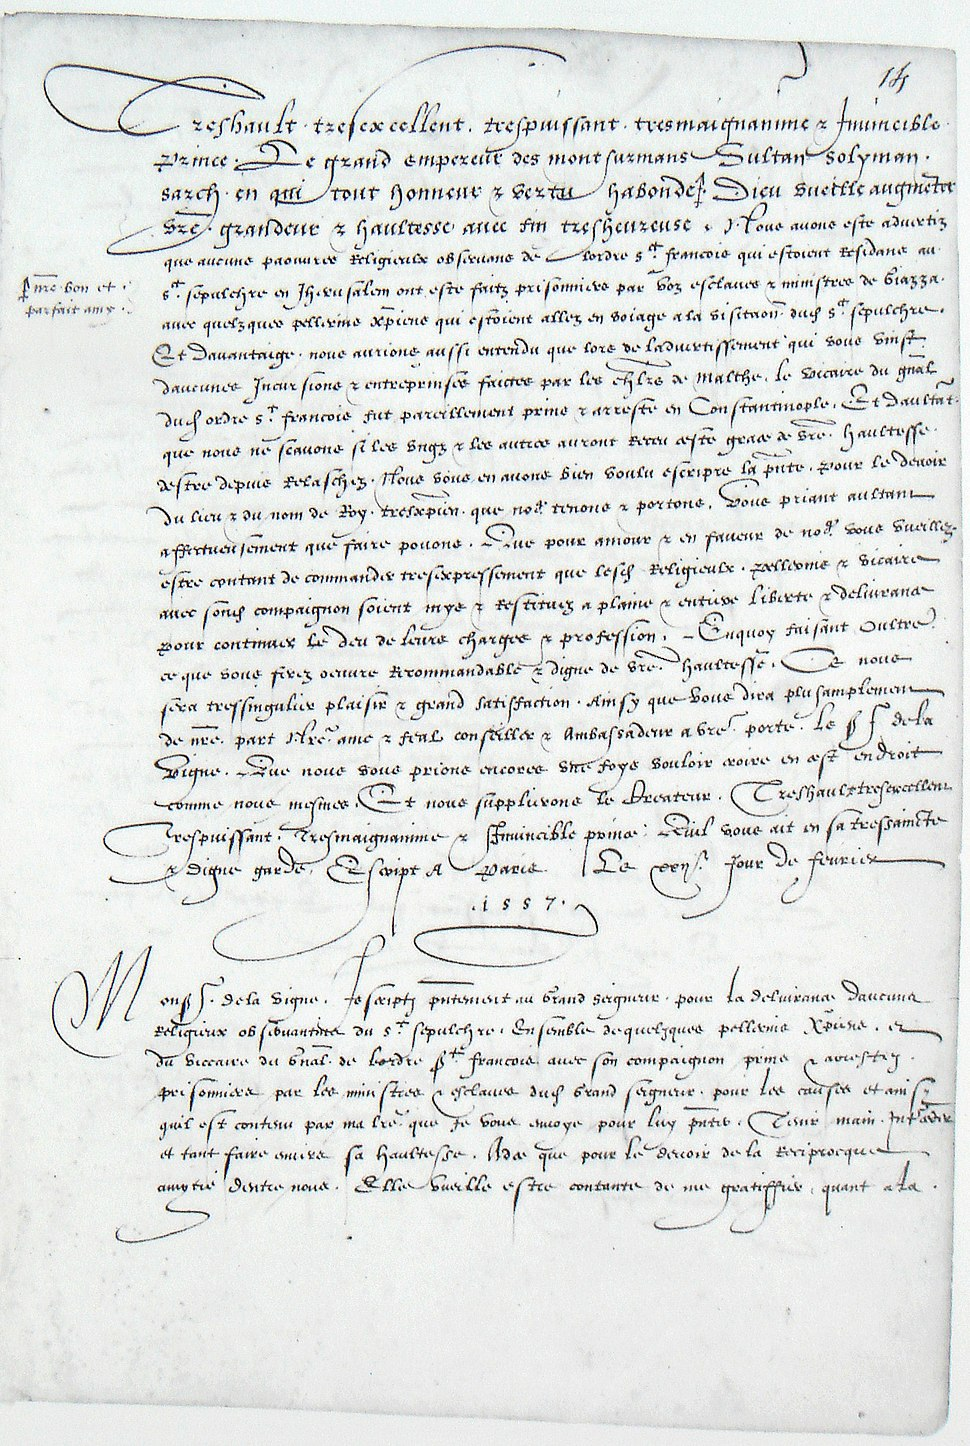 Letter from Henry II of France to Suleiman and ambassador de la Vigne 22 February 1557